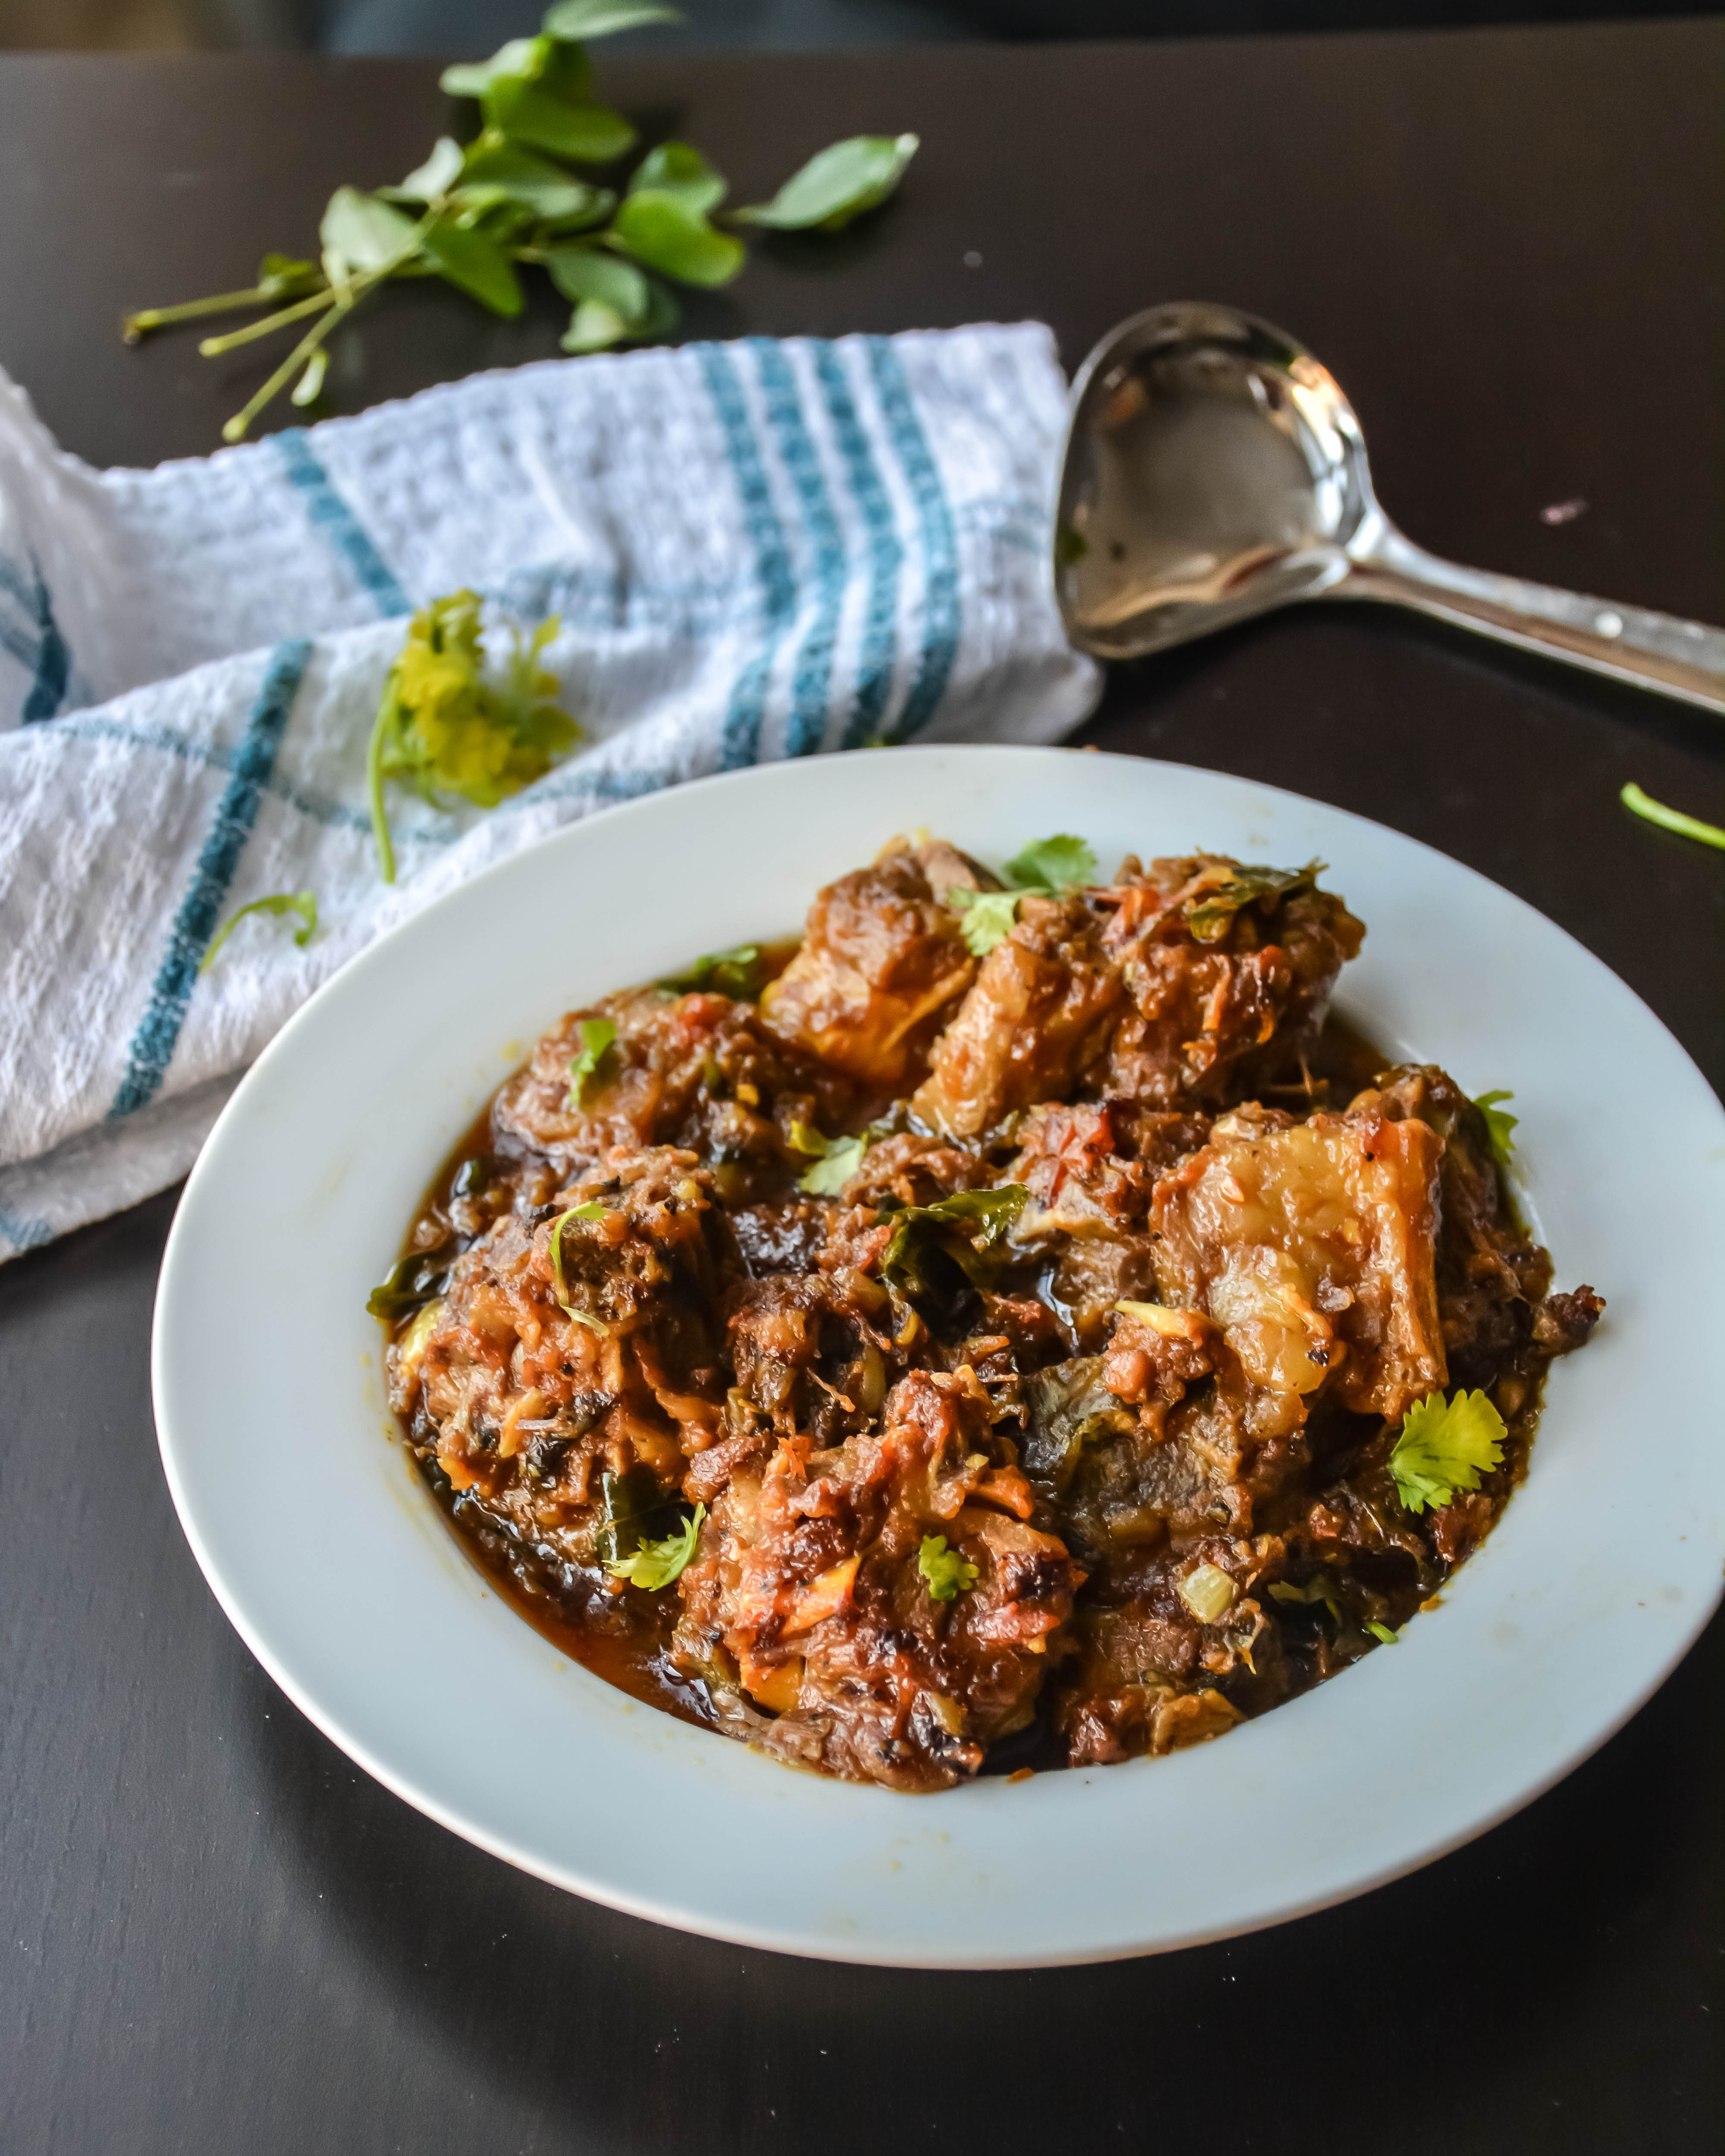 Insanely delicious lamb chicken recipes relish the bite ambur biryani is one of the south indian special biryani recipes perfecr for guest or sunday lunch recipe is here lamb pepper curry roast forumfinder Gallery